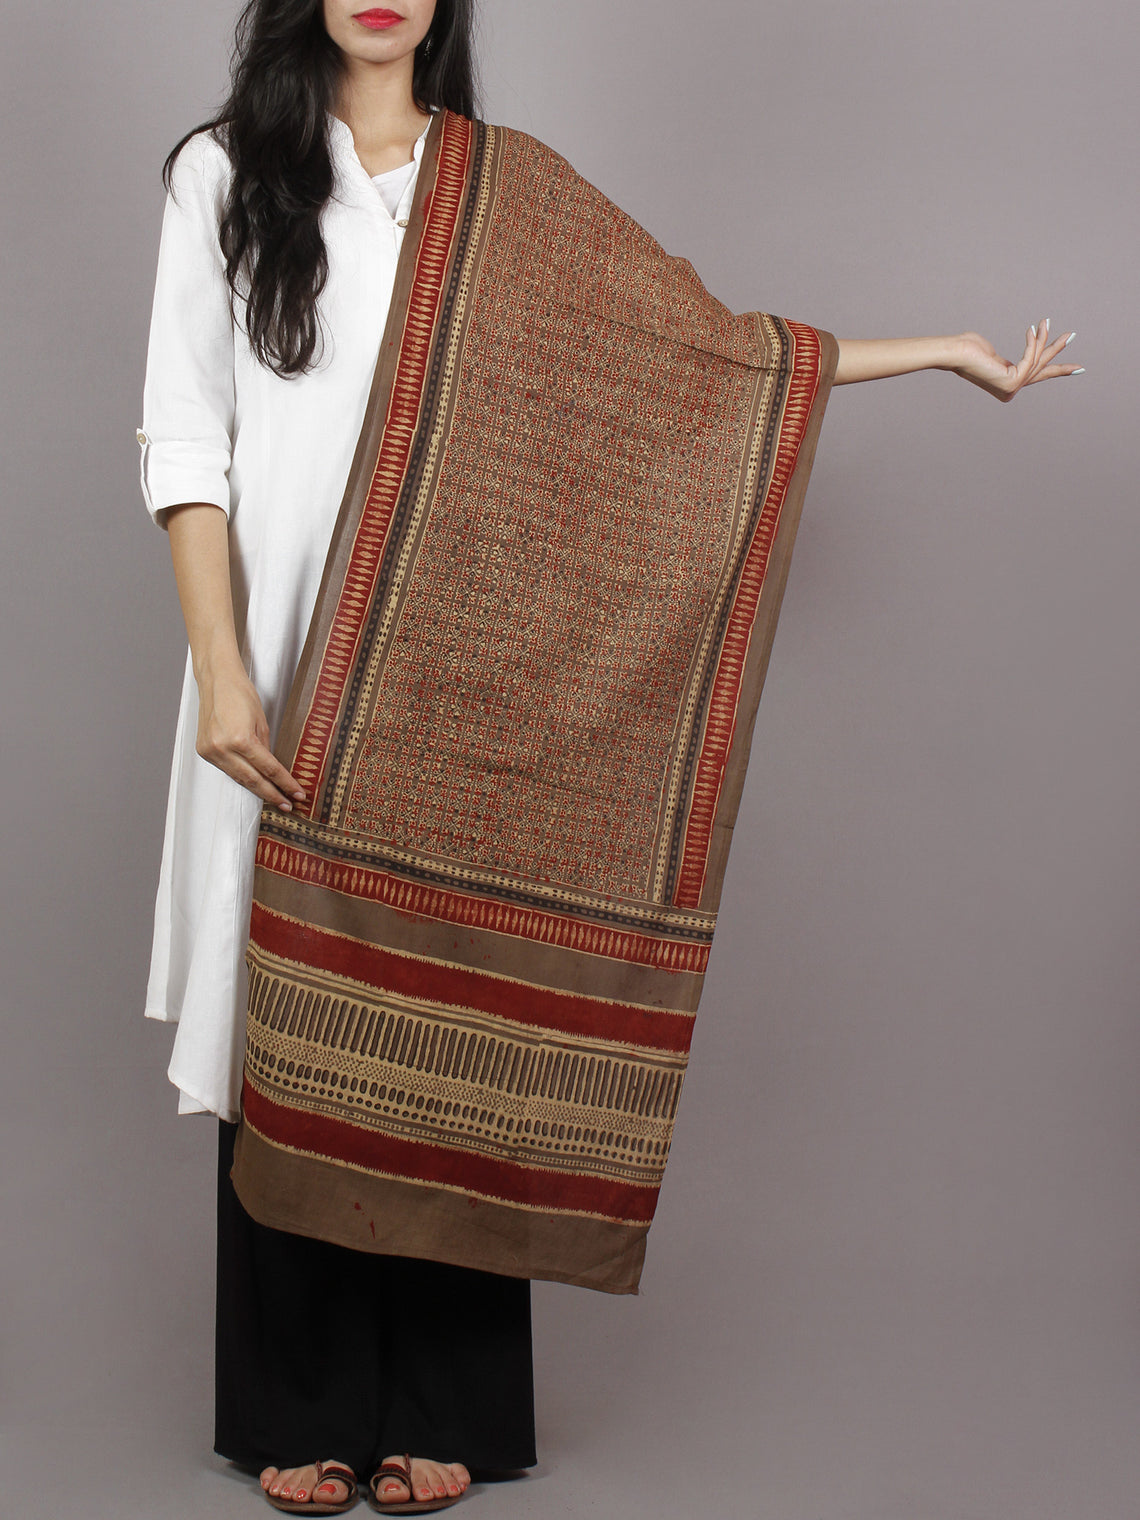 Brown Beige Maroon Black Mughal Nakashi Ajrakh Hand Block Printed Cotton Stole - S63170154